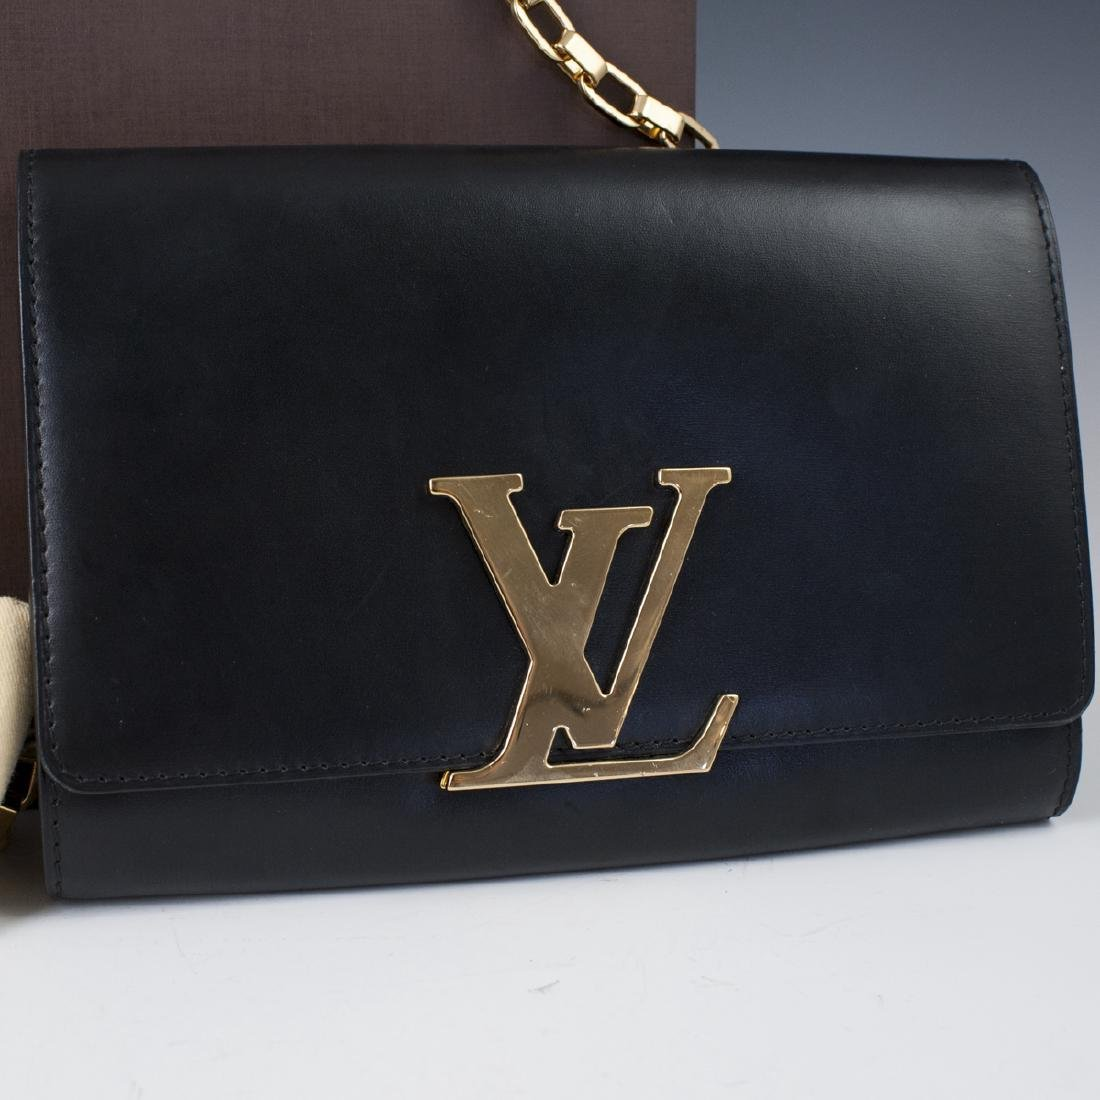 Louis Vuitton Black Calfskin Pochette Soir - 2